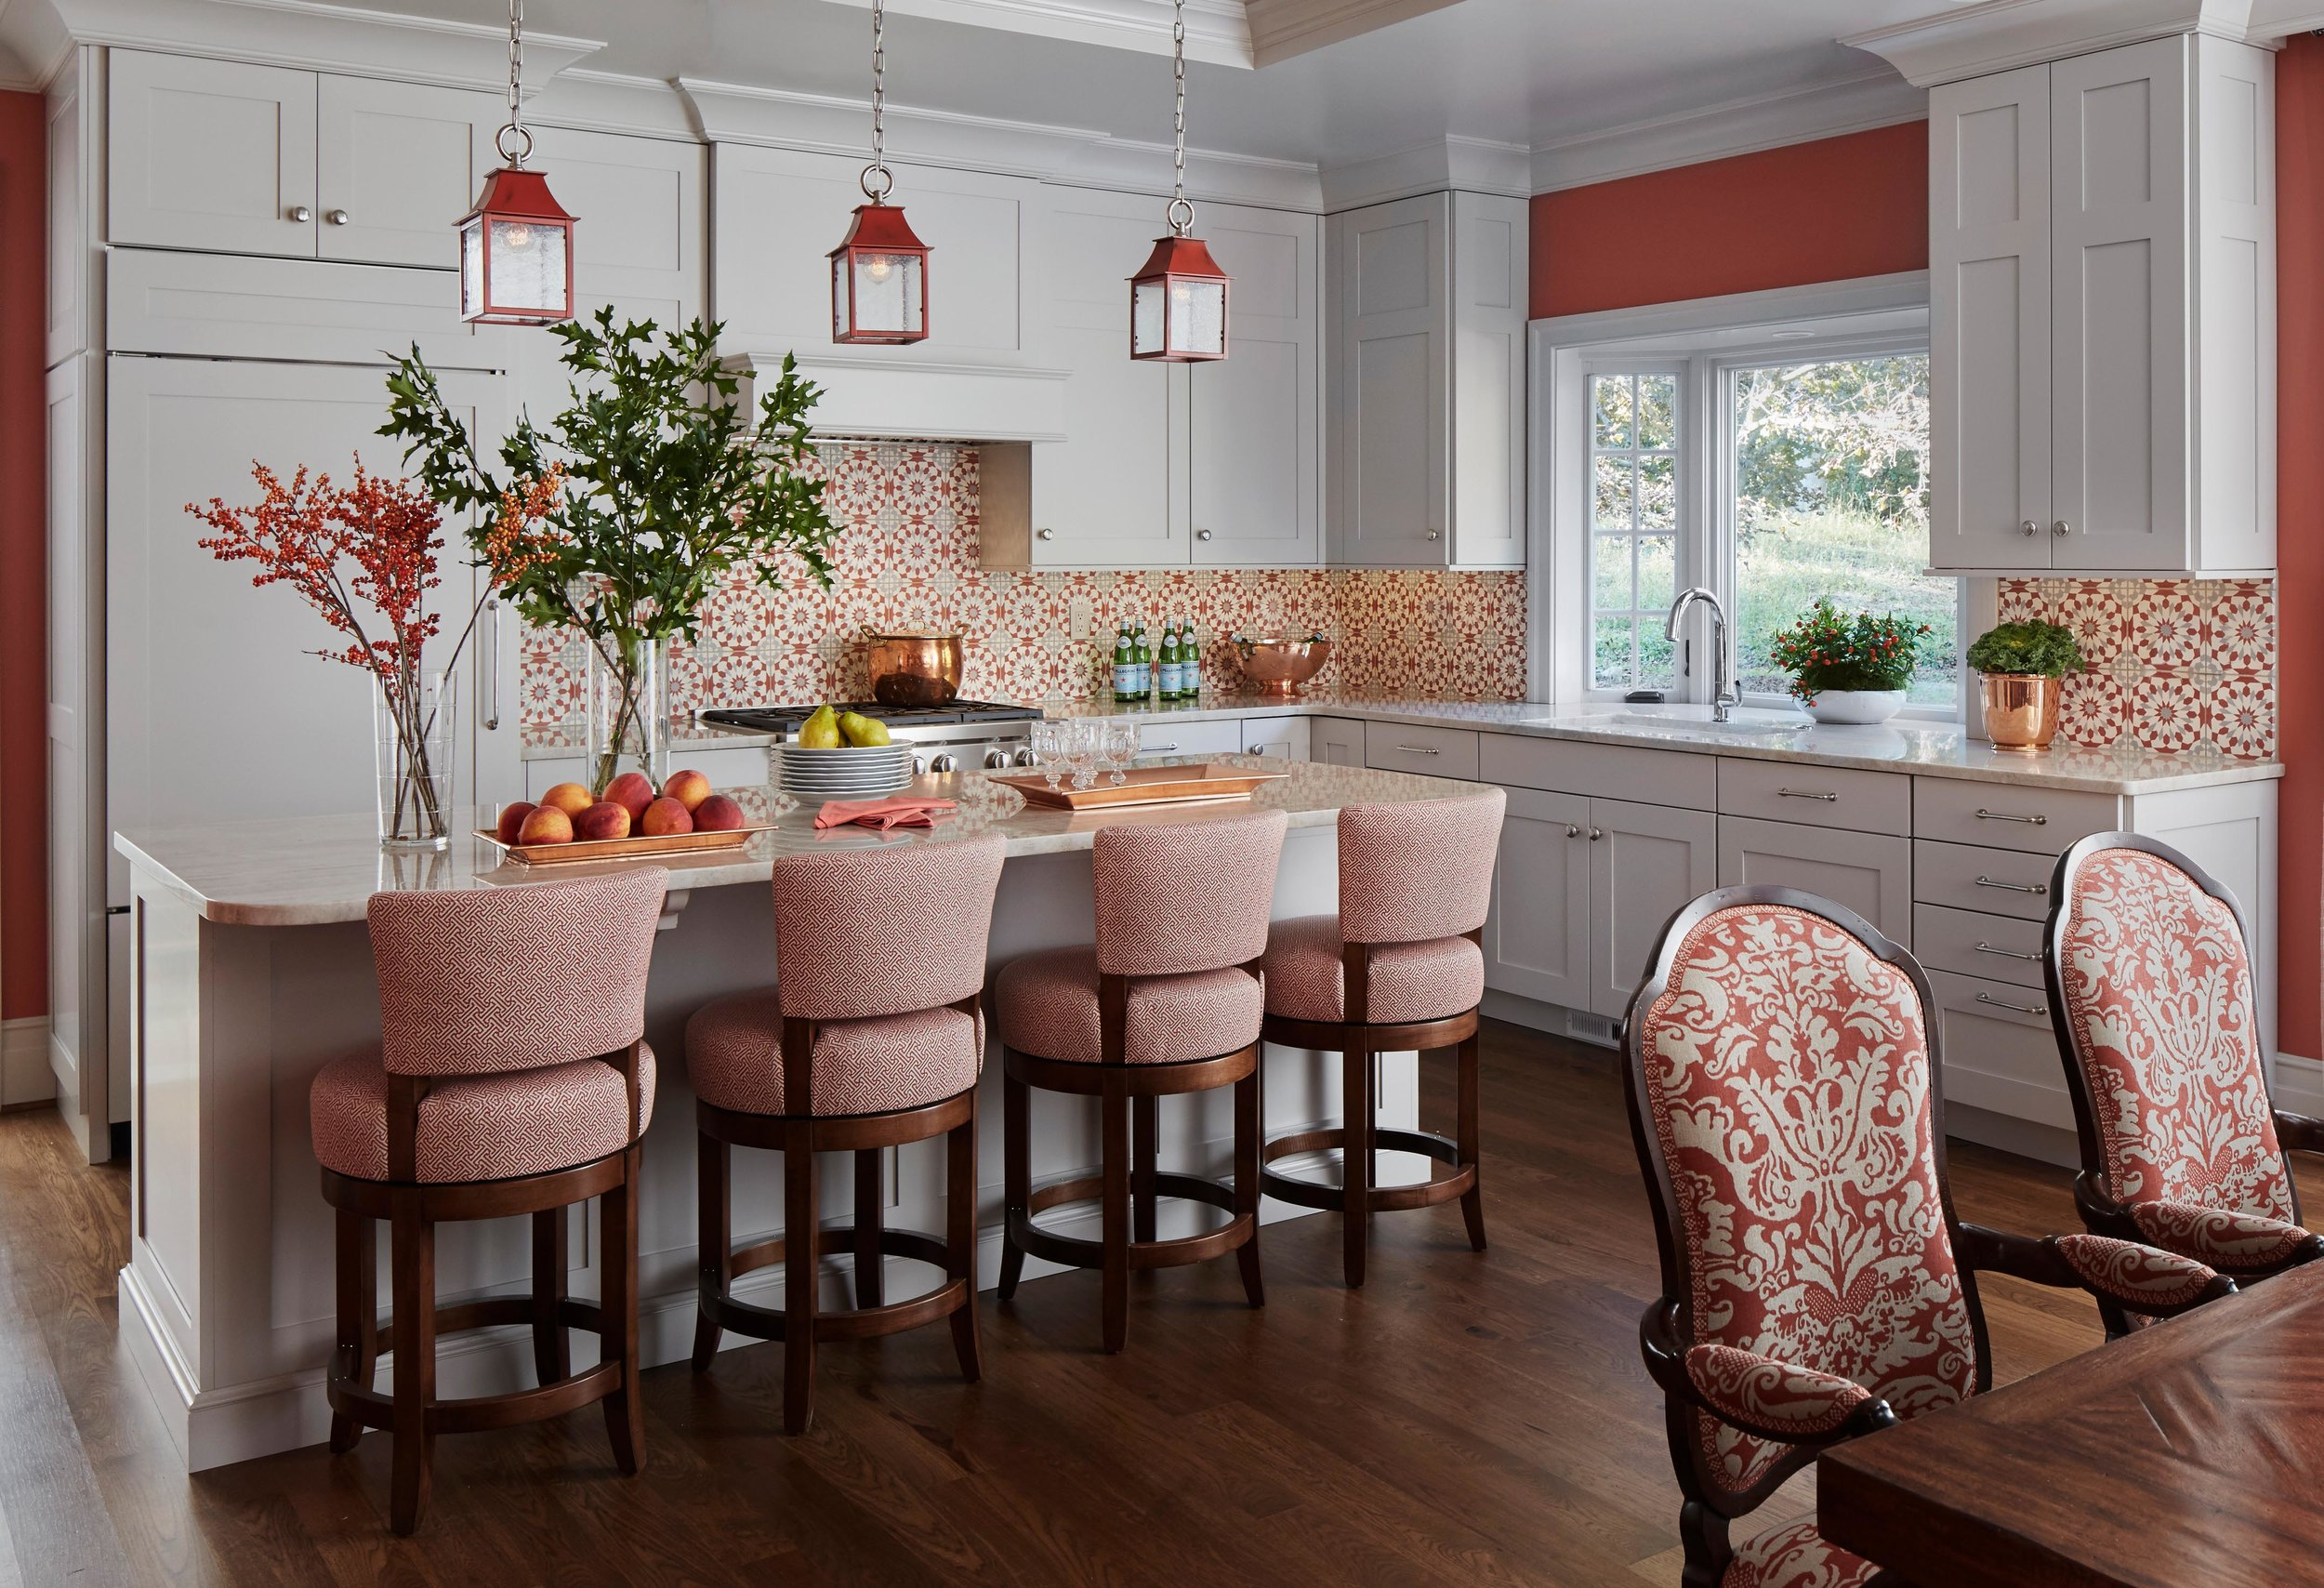 Coral accents in a beautiful classic kitchen. Come see more interior design inspiration from Elizabeth Drake. Photo by Werner Straube. #interiordesign #classicdesign #traditionaldecor #housetour #elizabethdrake